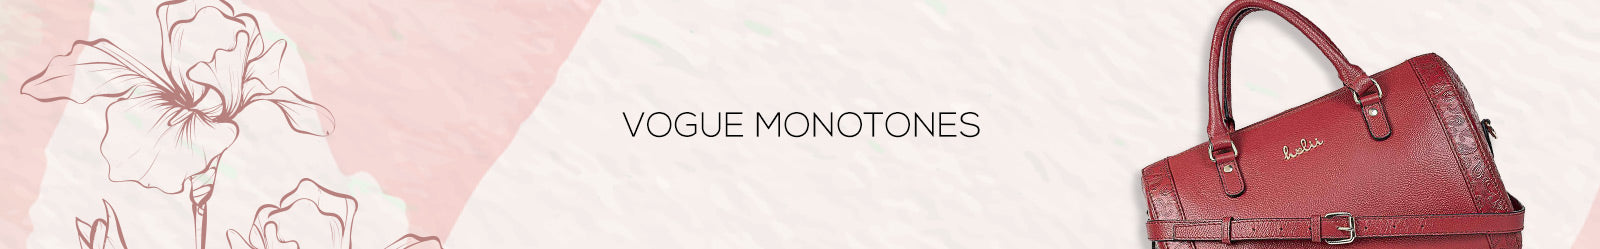 VOGUE MONOTONES FOR WOMEN